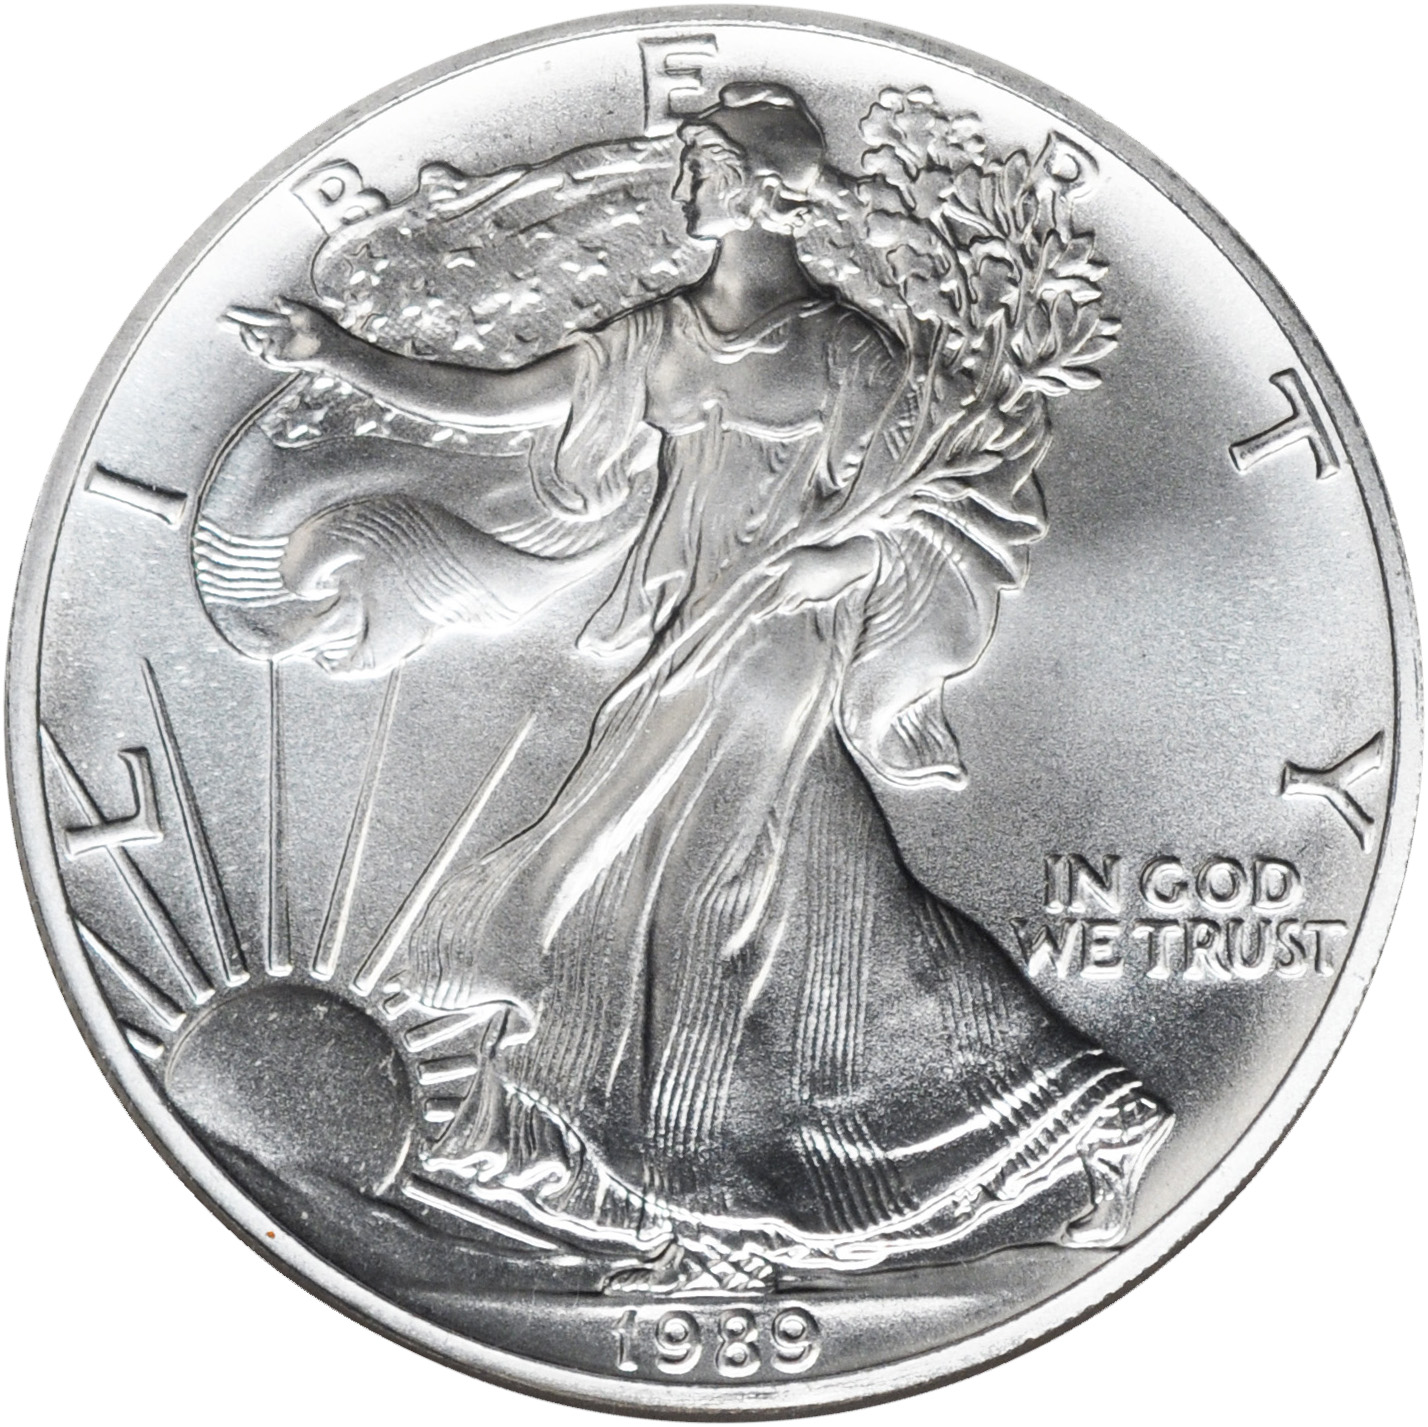 Value Of 1989 1 Silver Coin American